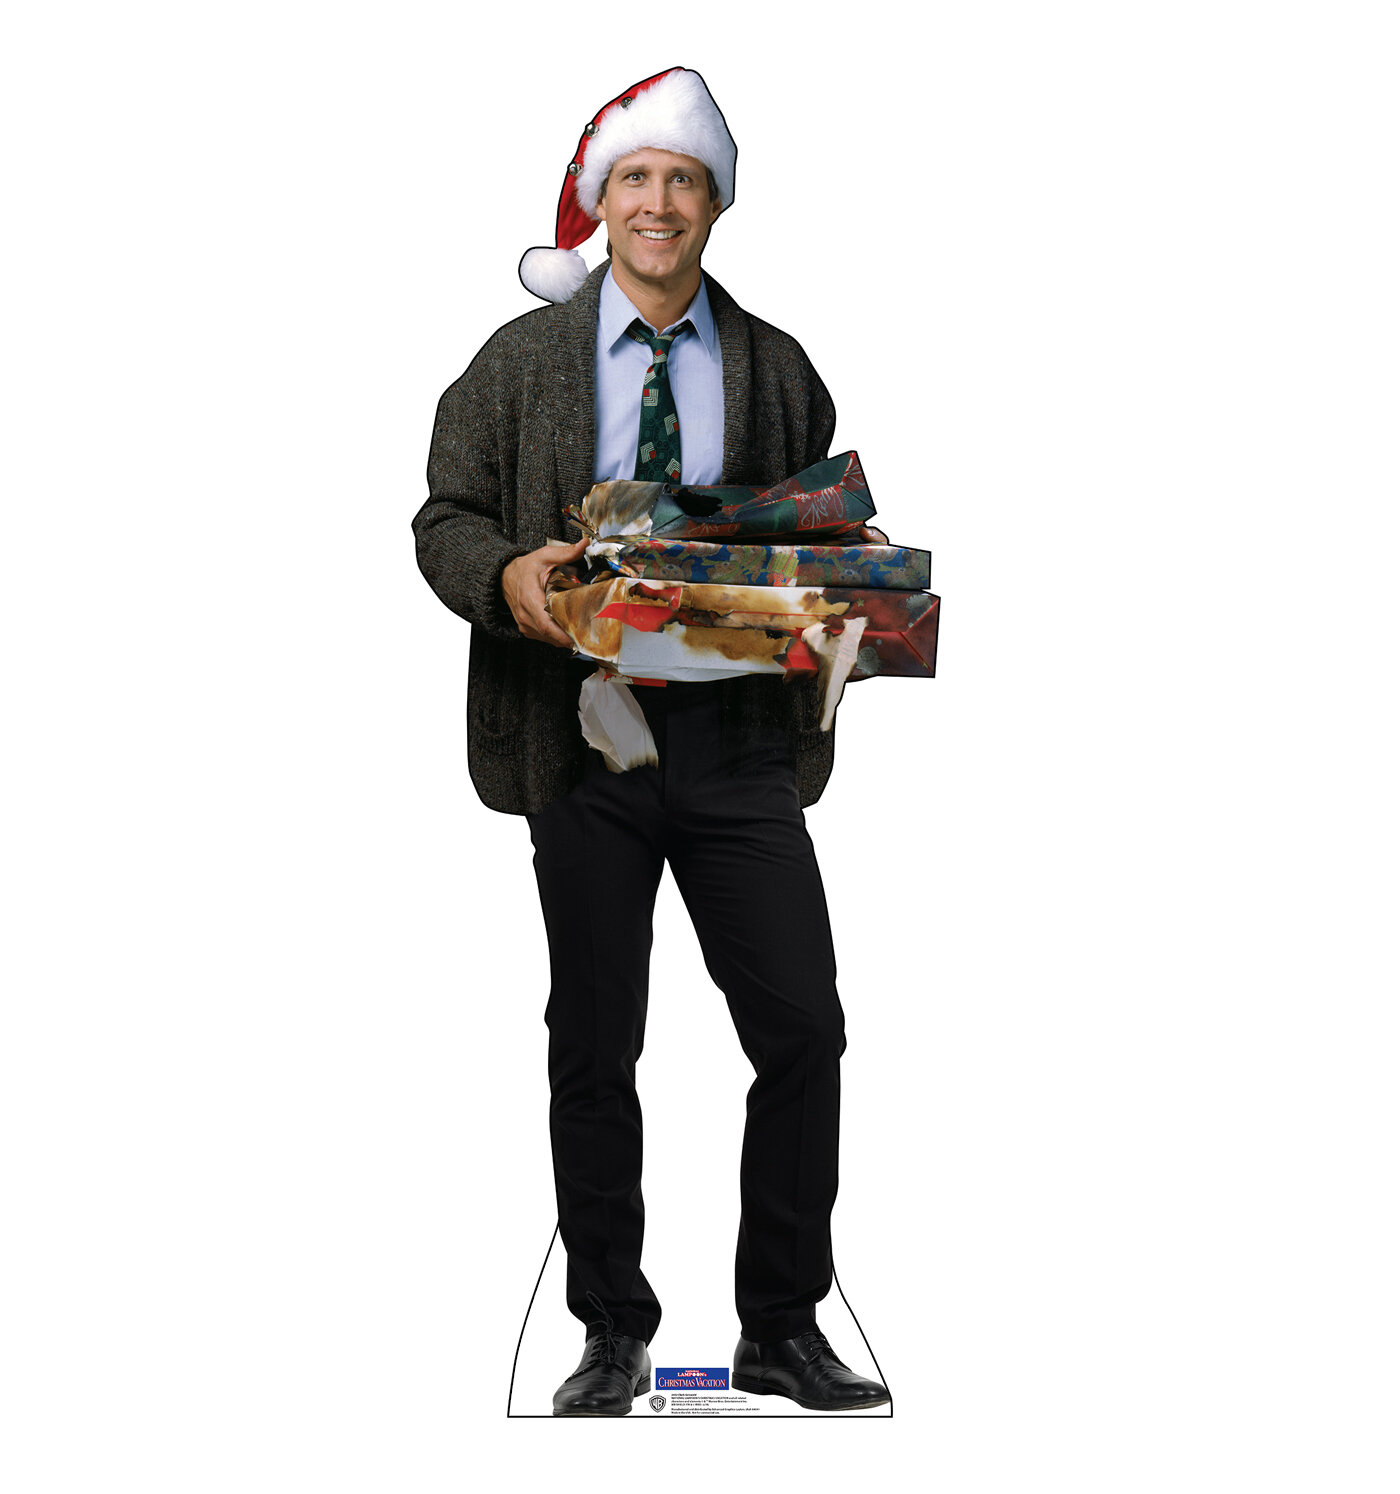 Clark Griswold Christmas Vacation.Clark Griswold National Lampoon S Christmas Vacation Standup